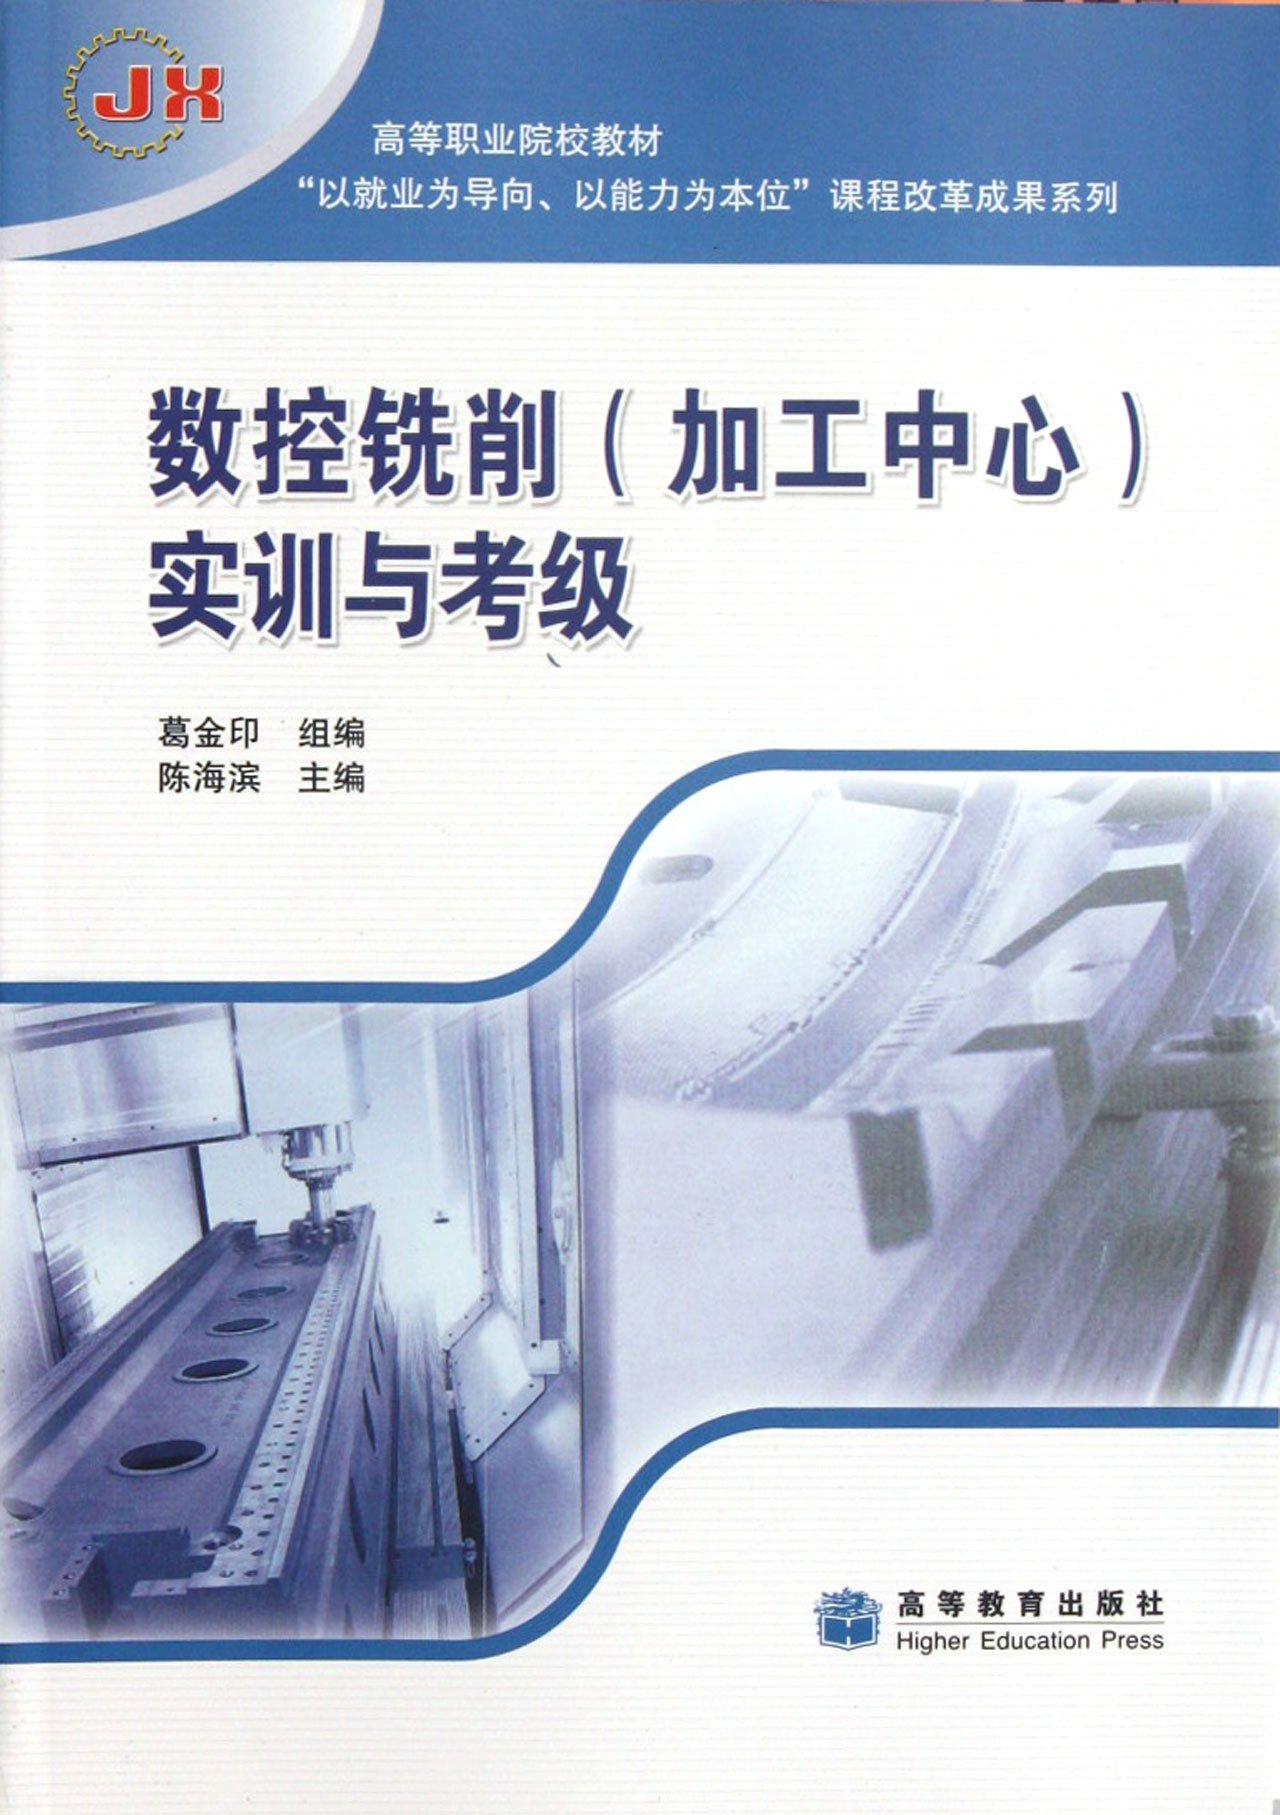 Numerical Control Milling  Practical Training and Level Tests (higher vocational school teaching material) (Chinese Edition) pdf epub